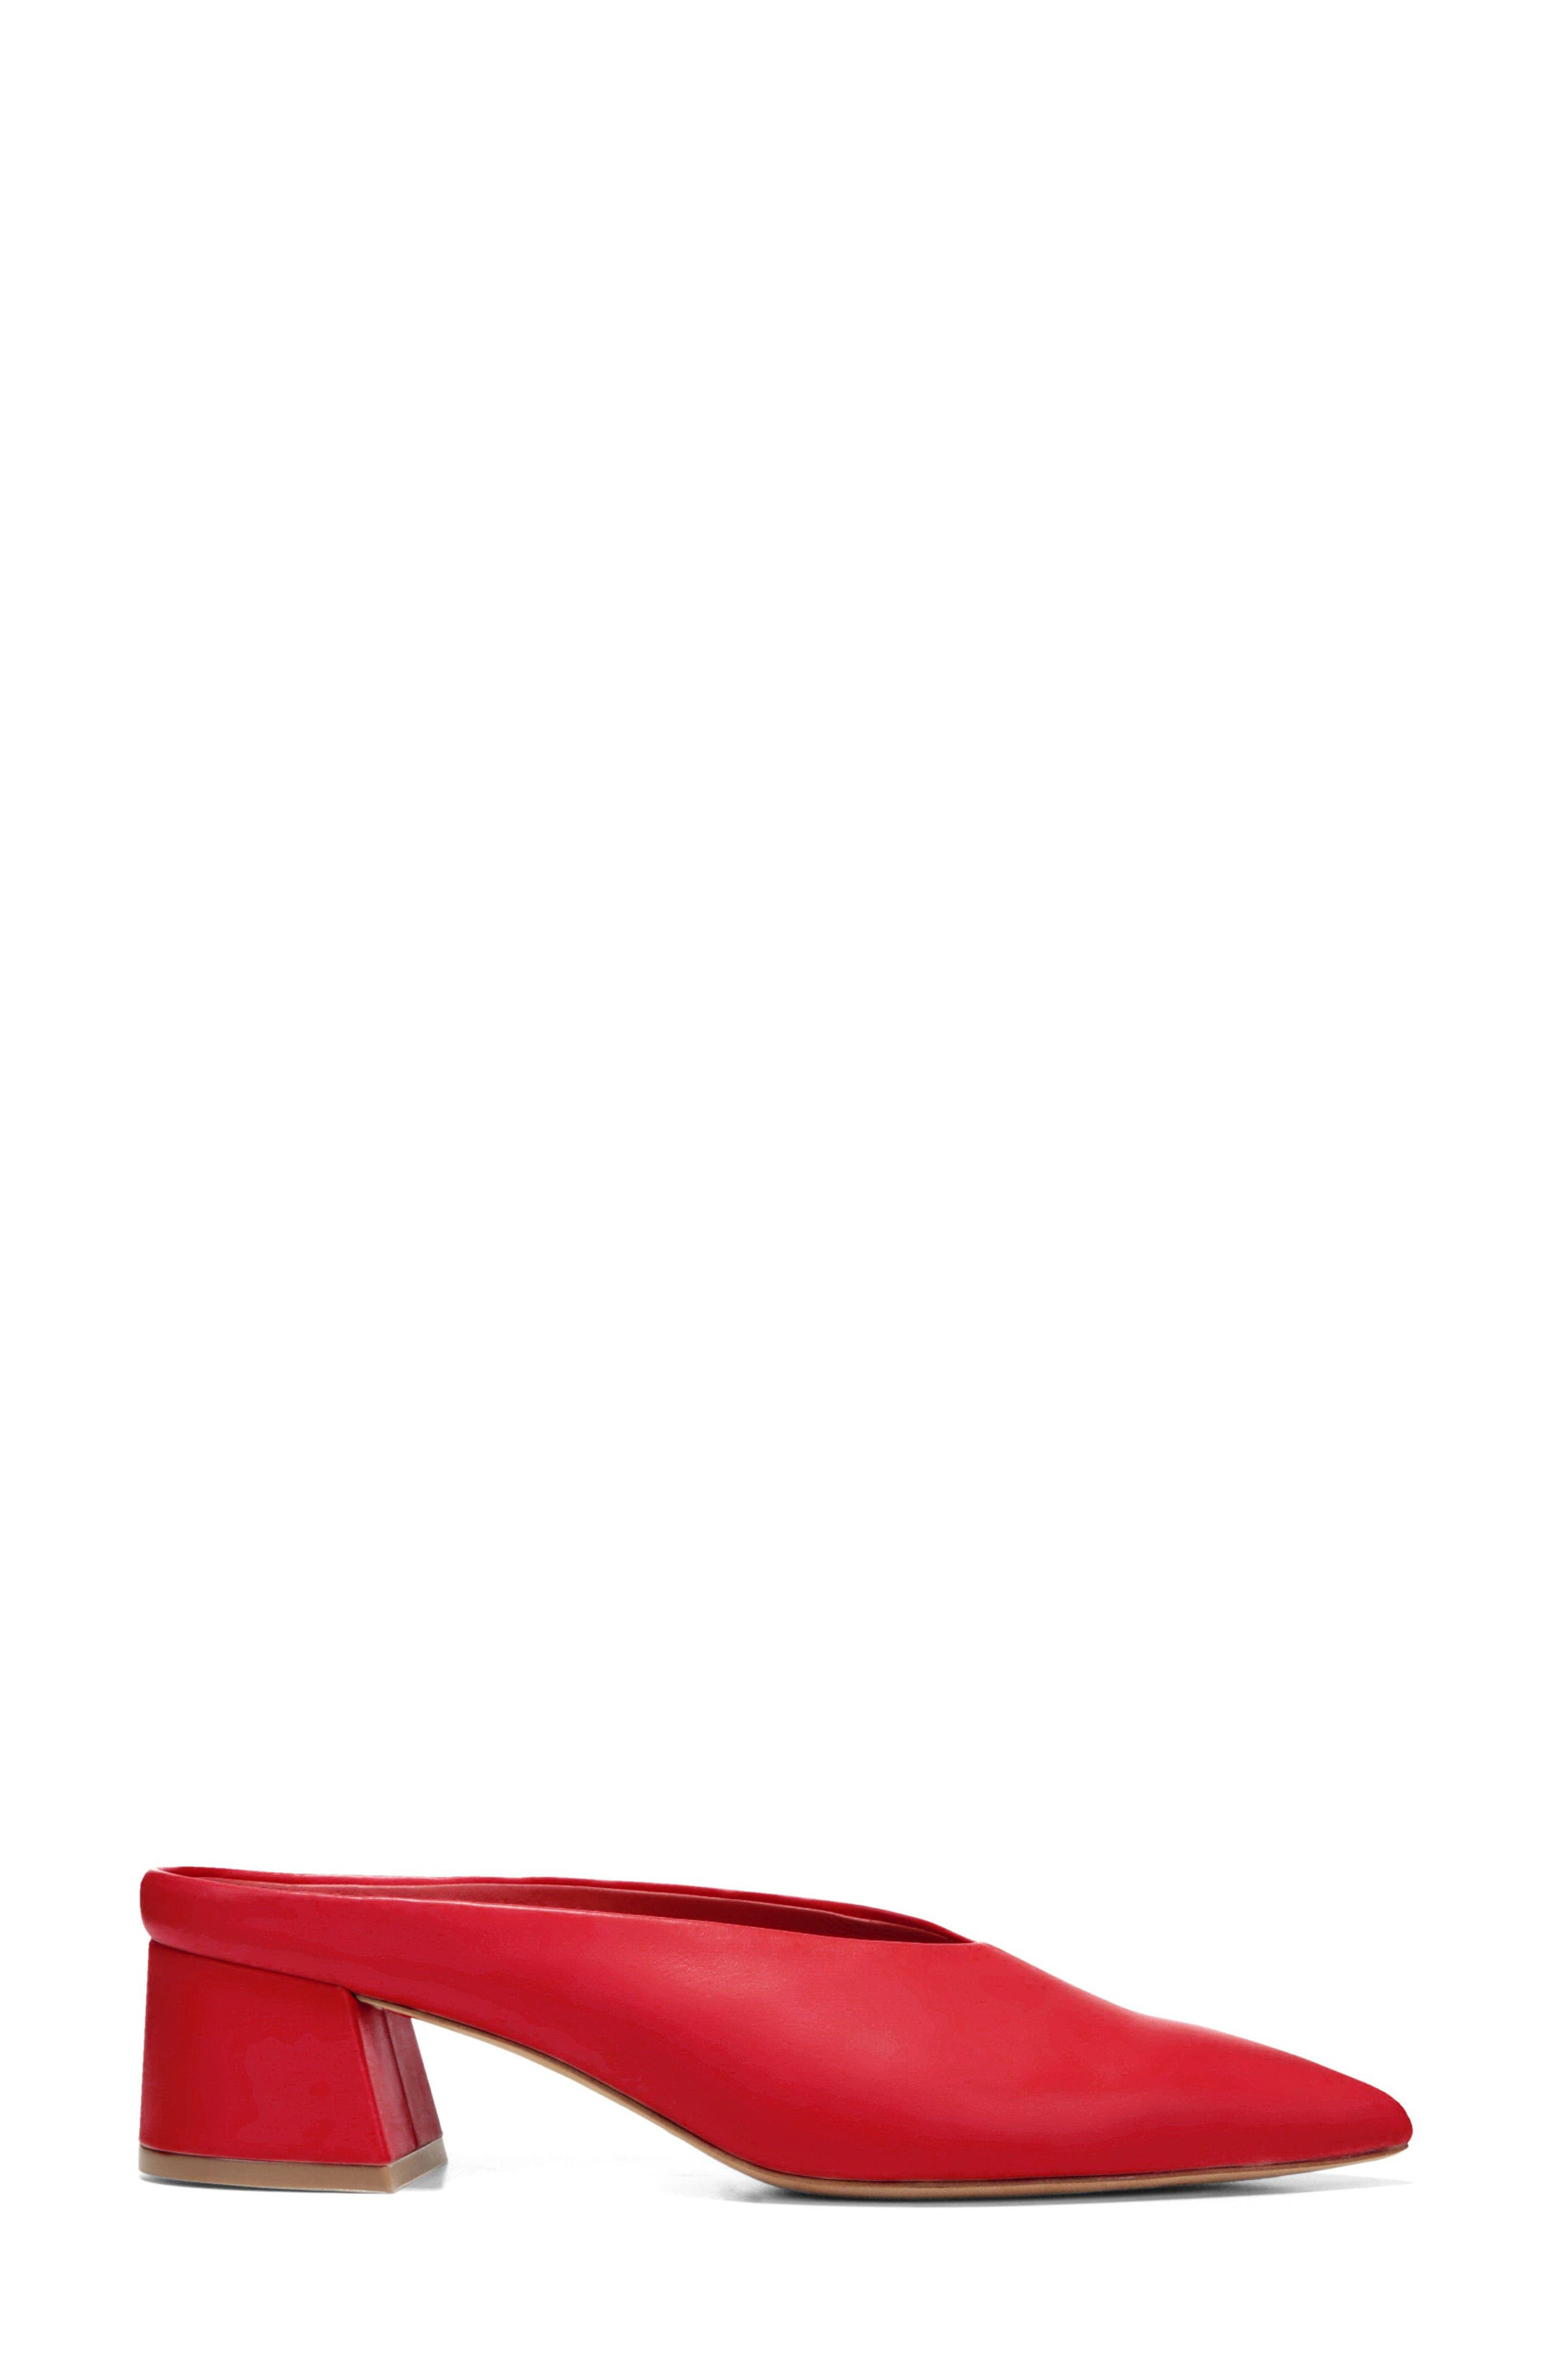 Ralston Pointy Toe Mule,                             Alternate thumbnail 3, color,                             Red Leather